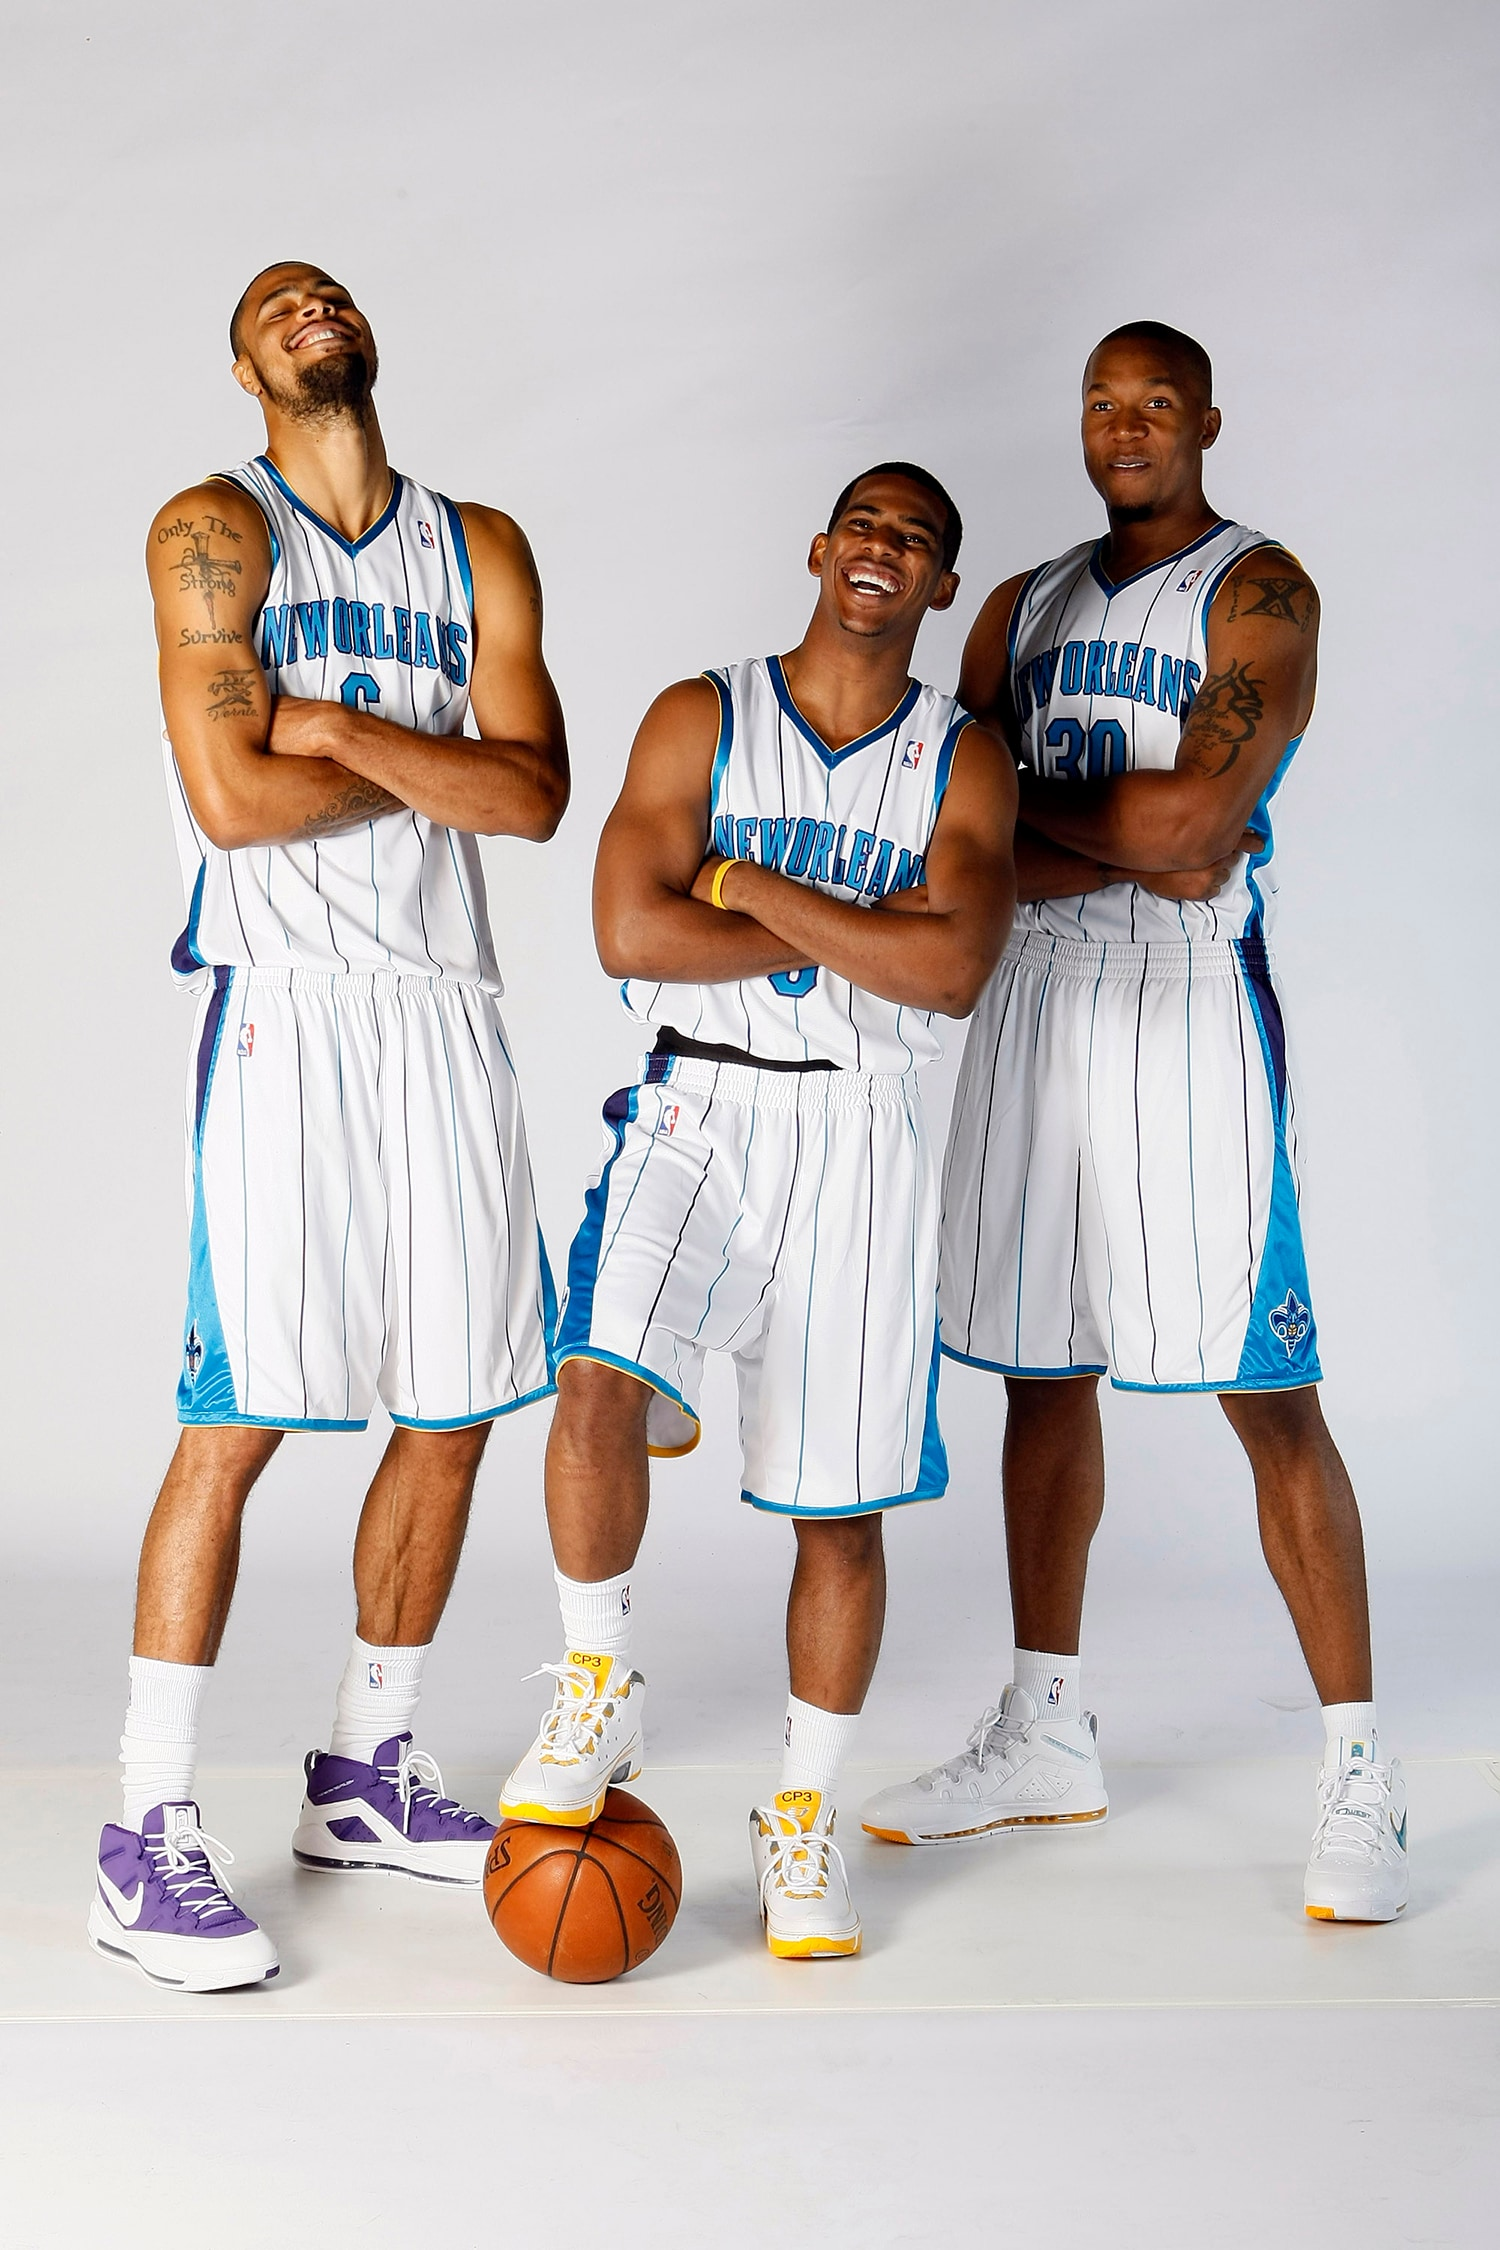 bfec2cc8d68 New Orleans Hornets, 2008 Media Day.(Getty Images)